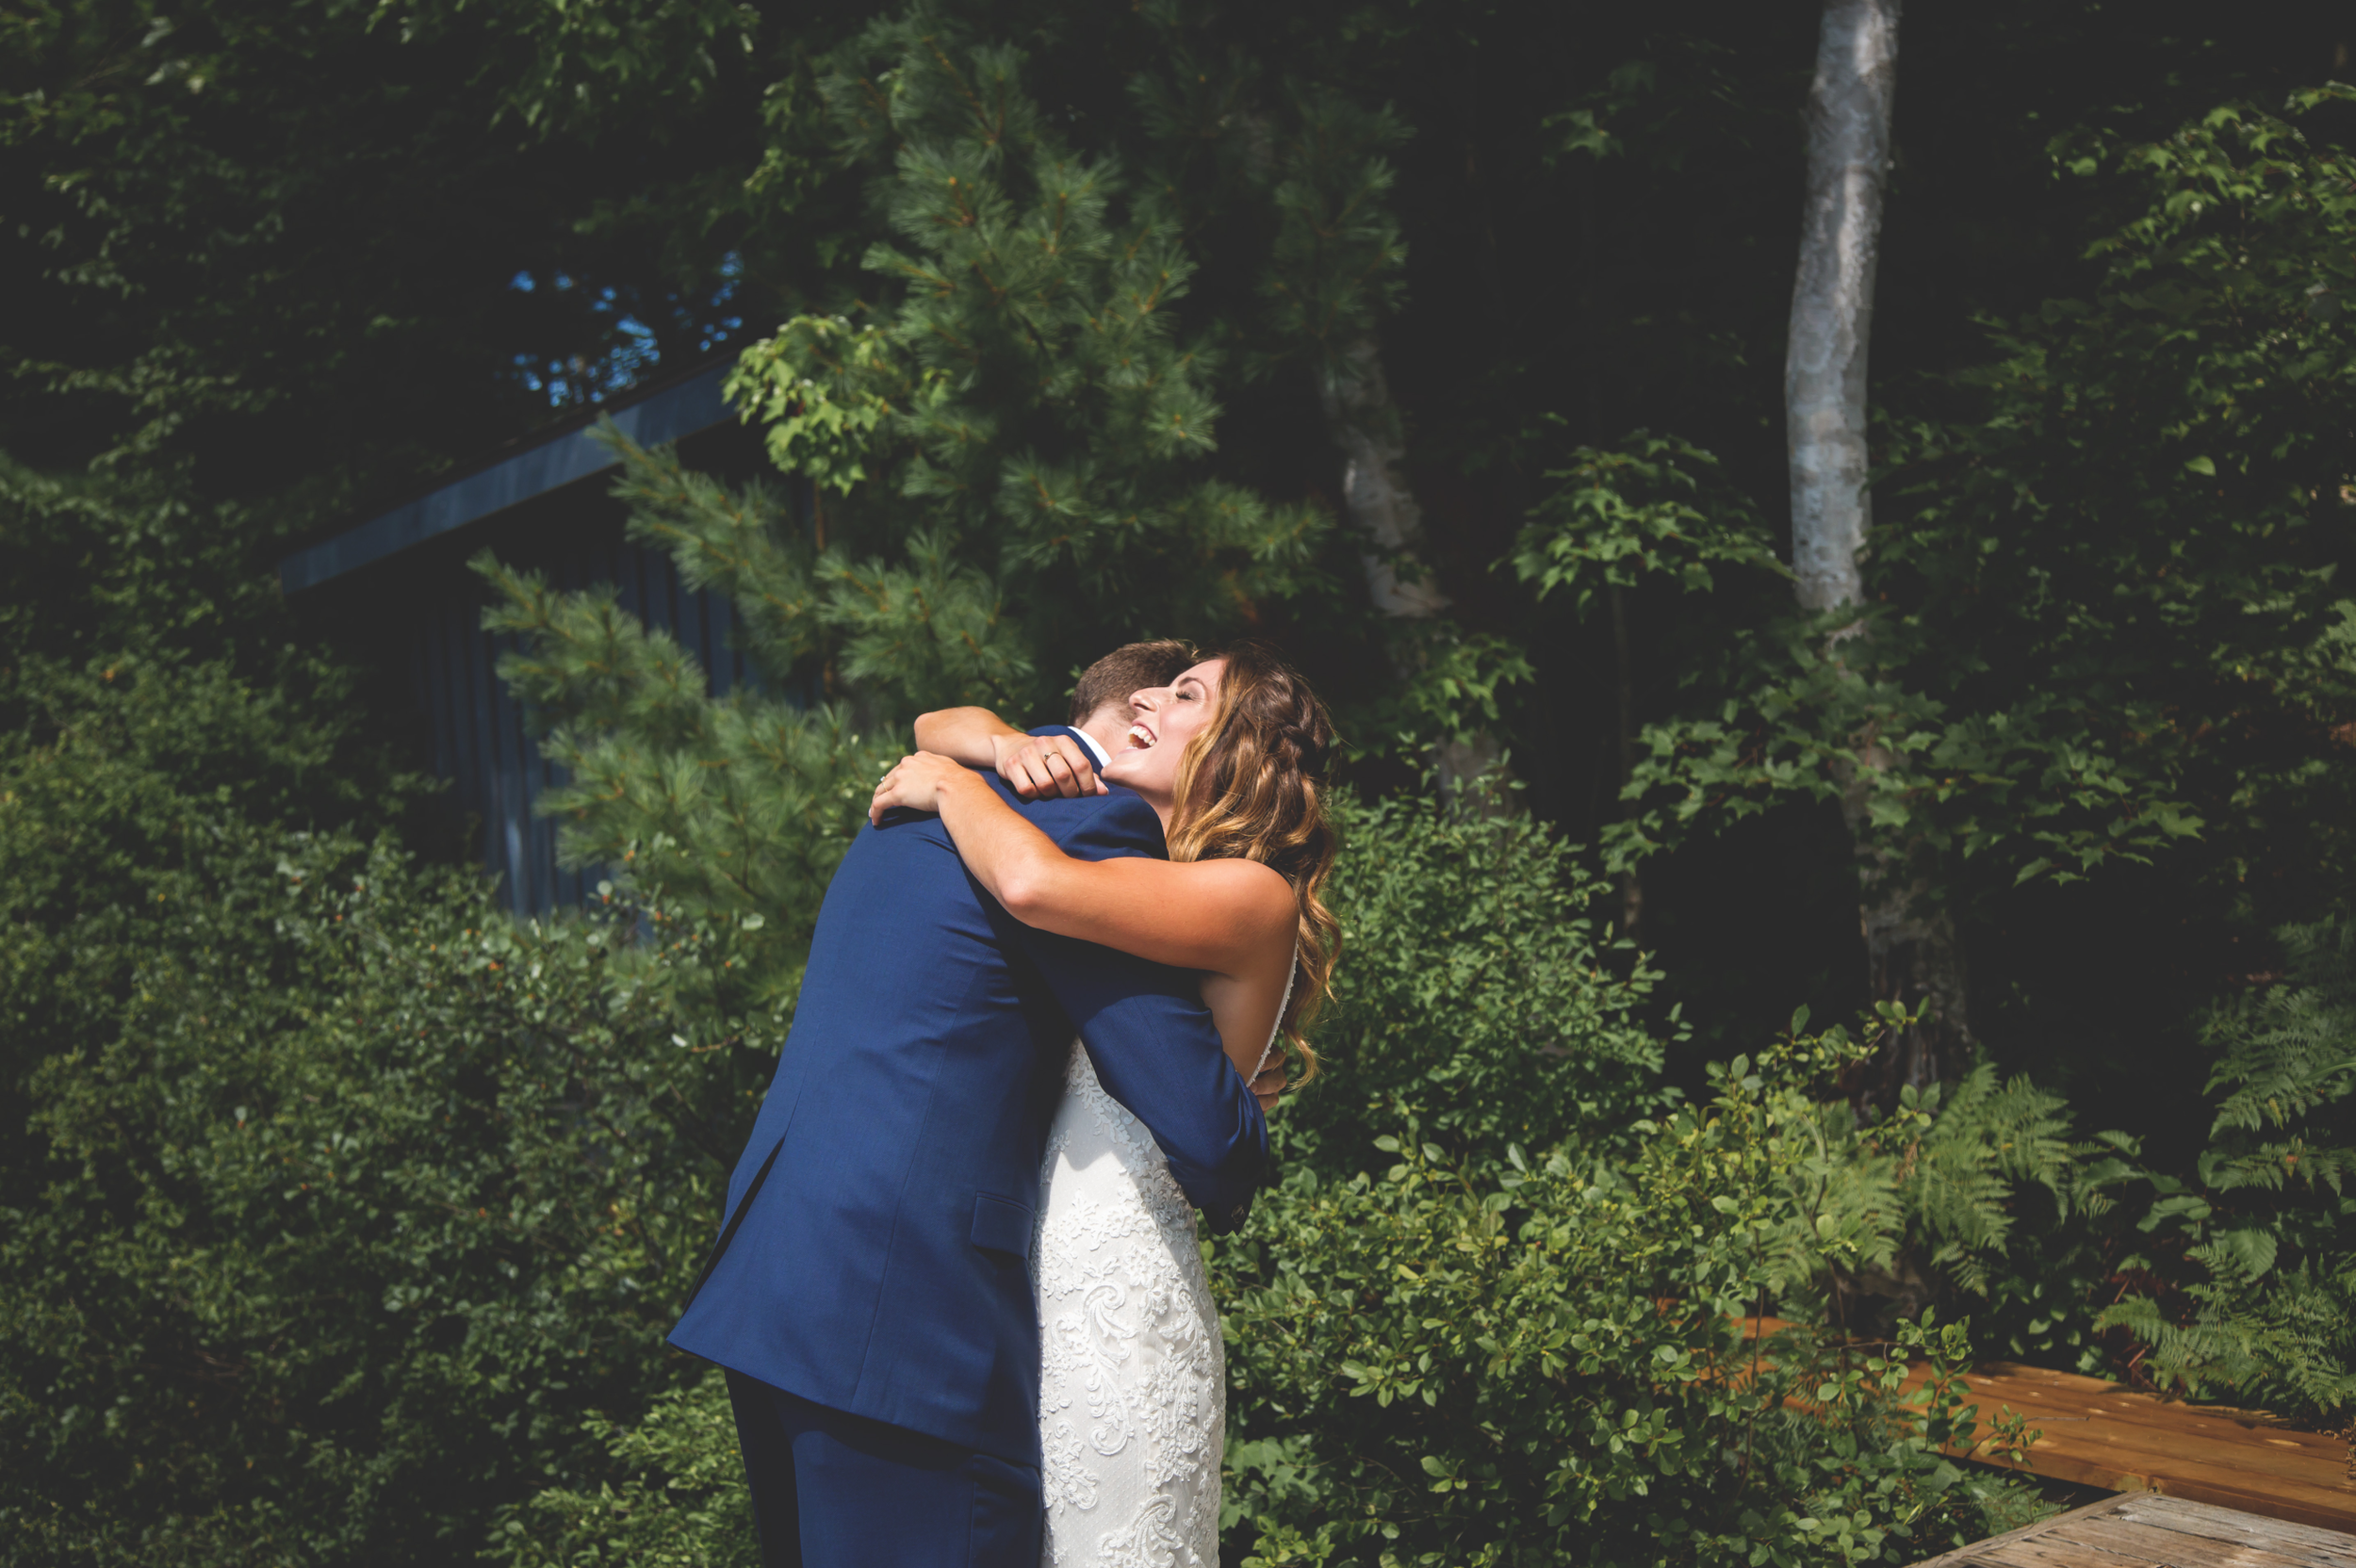 Moments-by-Lauren-Modern-Fun-Authentic-Wedding-Lifestyle-Family-Photographer-Hamilton-Burlington-Niagara-Oakville-Toronto-Muskoka-Ontario-Photography-Photo-Image-68.png